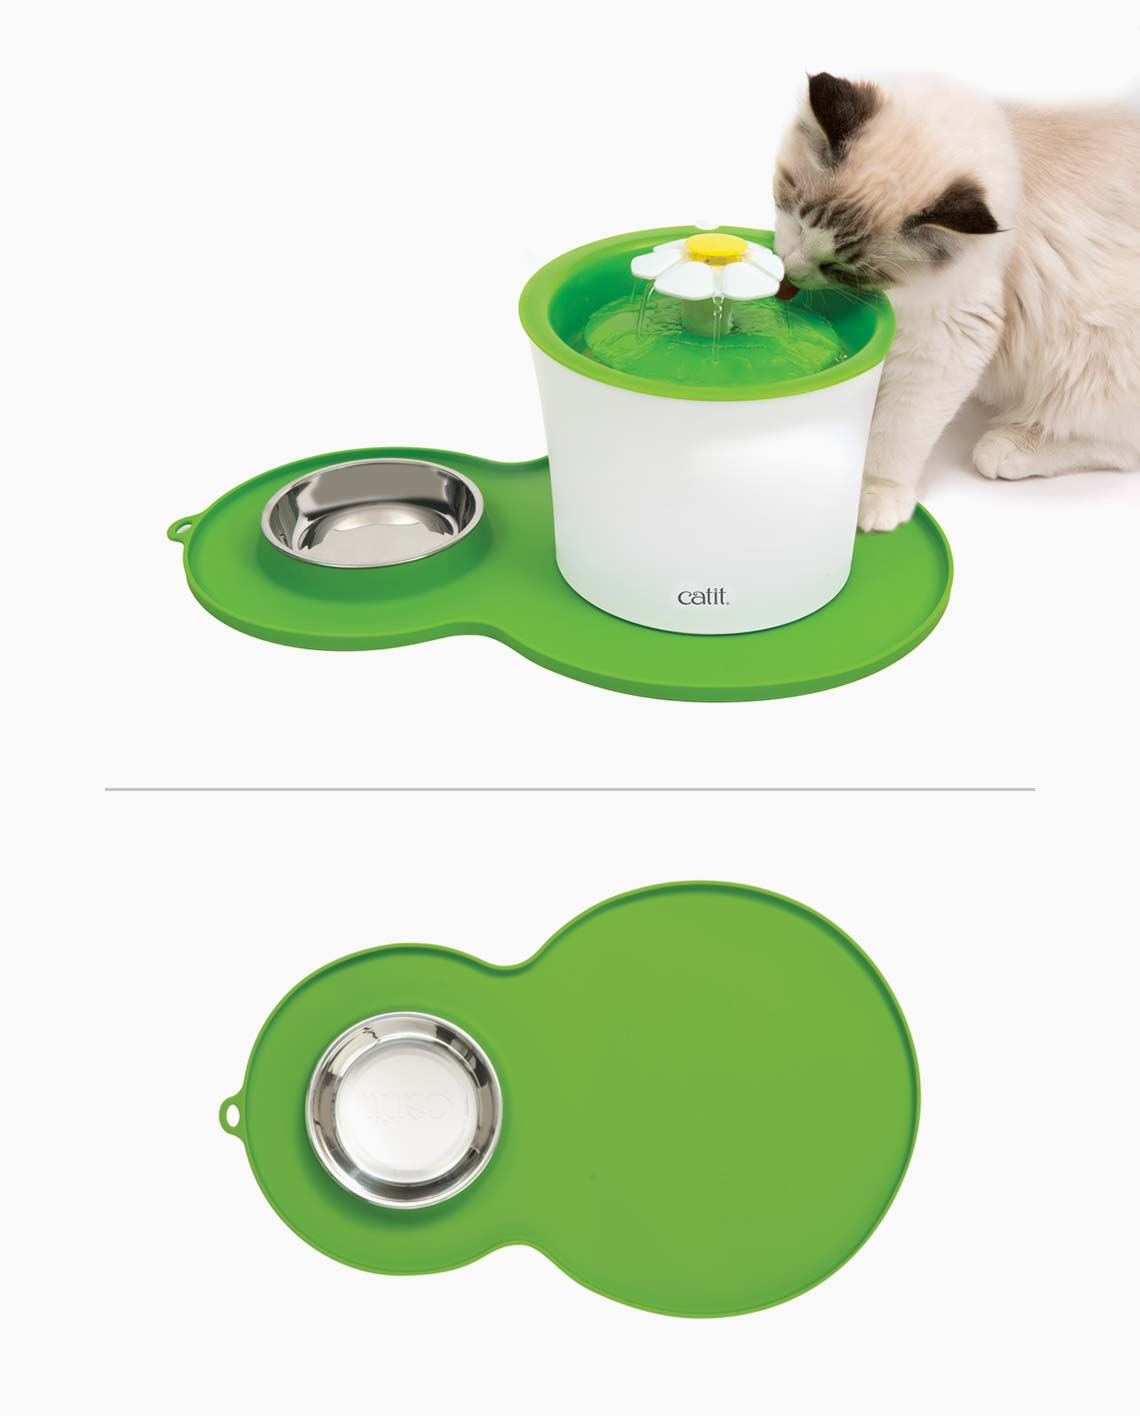 Cute cat drinking from a flower fountain on a peanut placemat